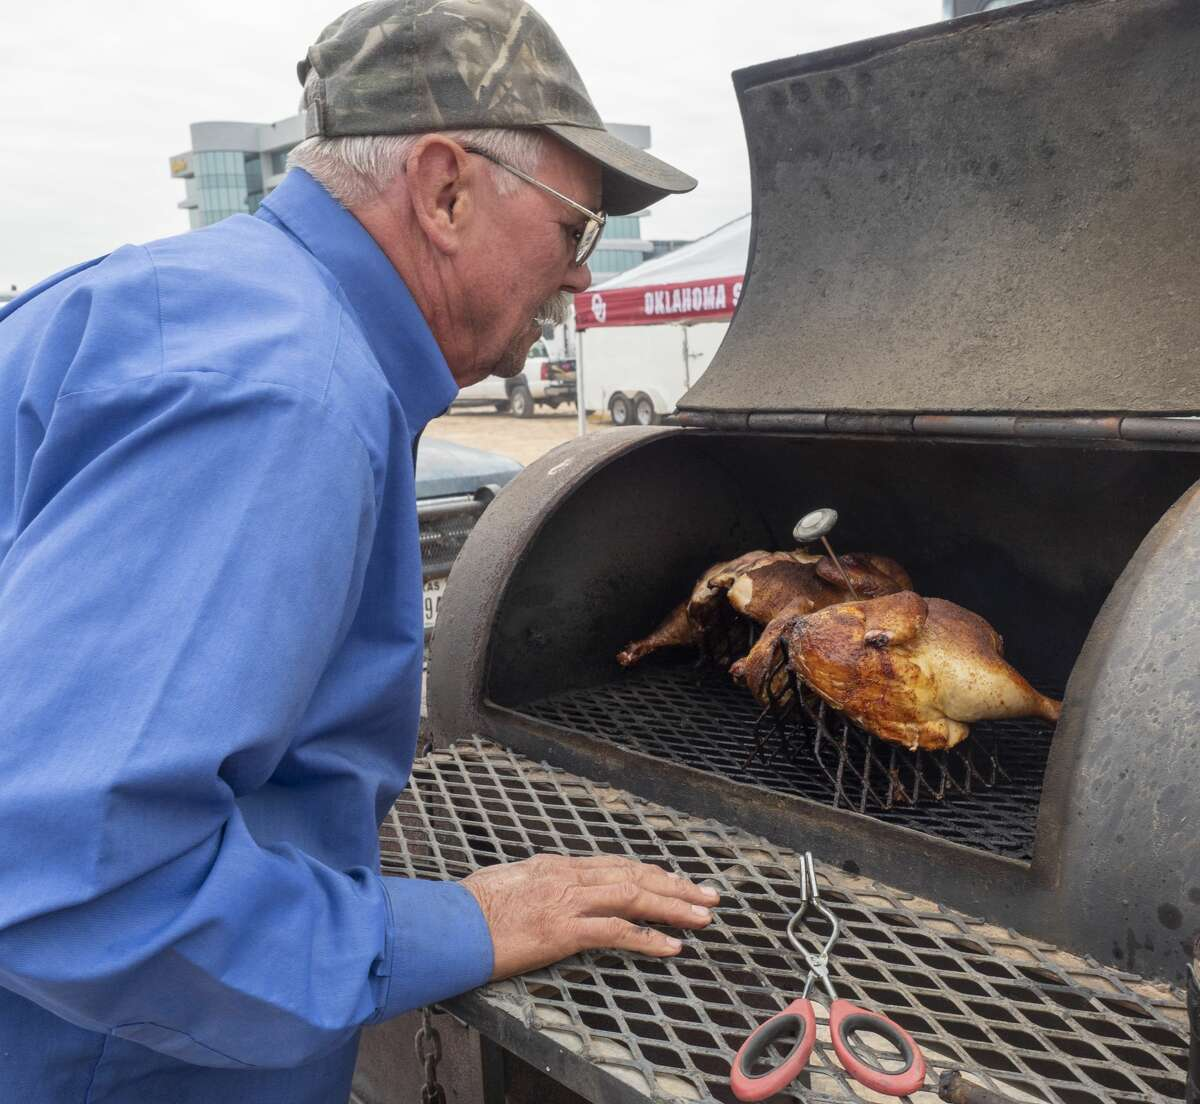 Buddy McGuire with team Black Sheep, checks the temperature of his whole chicken 10/12/19 as he and other teams cook brisket, chicken, chilli and other smoked treats outside the American Legion Post off Veterans Park Lane during the annual Patsy's Cook-off Breast Cancer Awareness competition. Tim Fischer/Reporter-Telegram